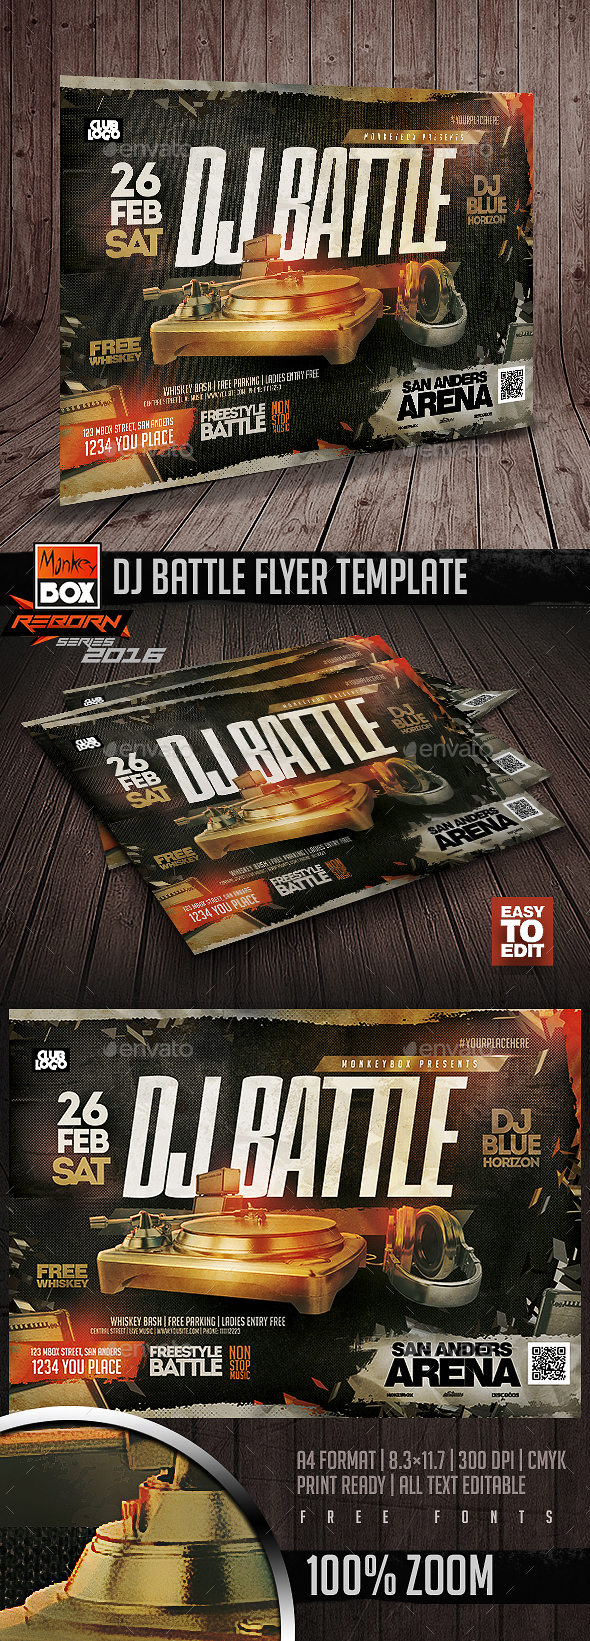 Dj Battle Flyer Template - Flyers Print Templates